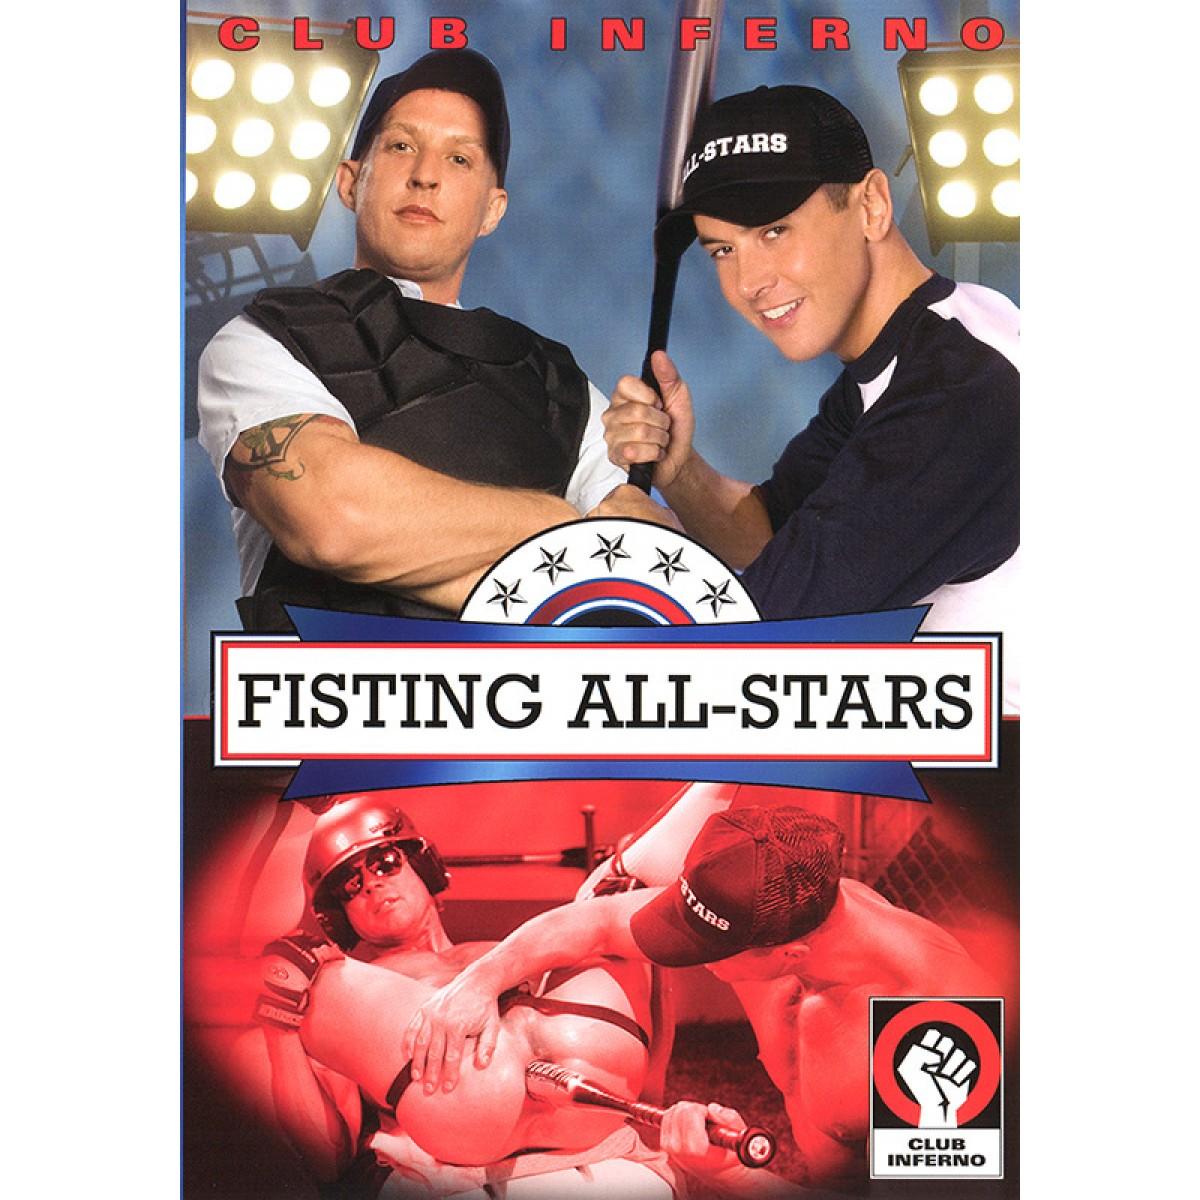 Fisting all stars was